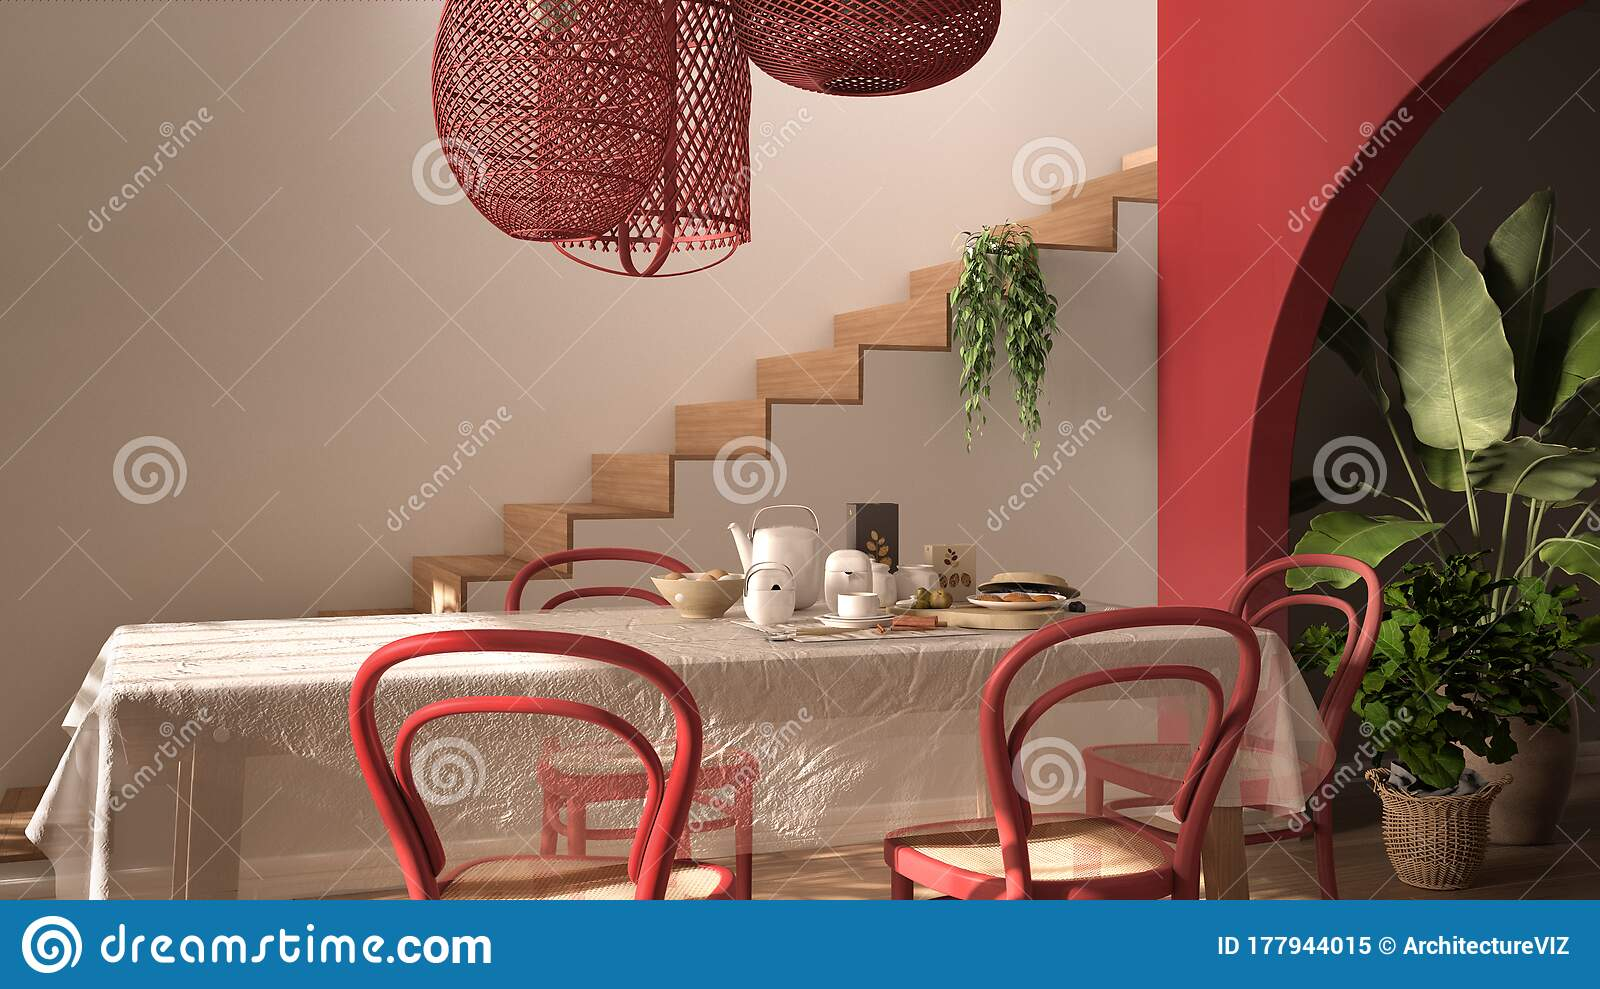 Vintage Retro Dining Room With Wooden Table And Chairs In Red Tones Breakfast Buffet Rattan Pendant Lamps Parquet Floor Stock Illustration Illustration Of Living Lamp 177944015